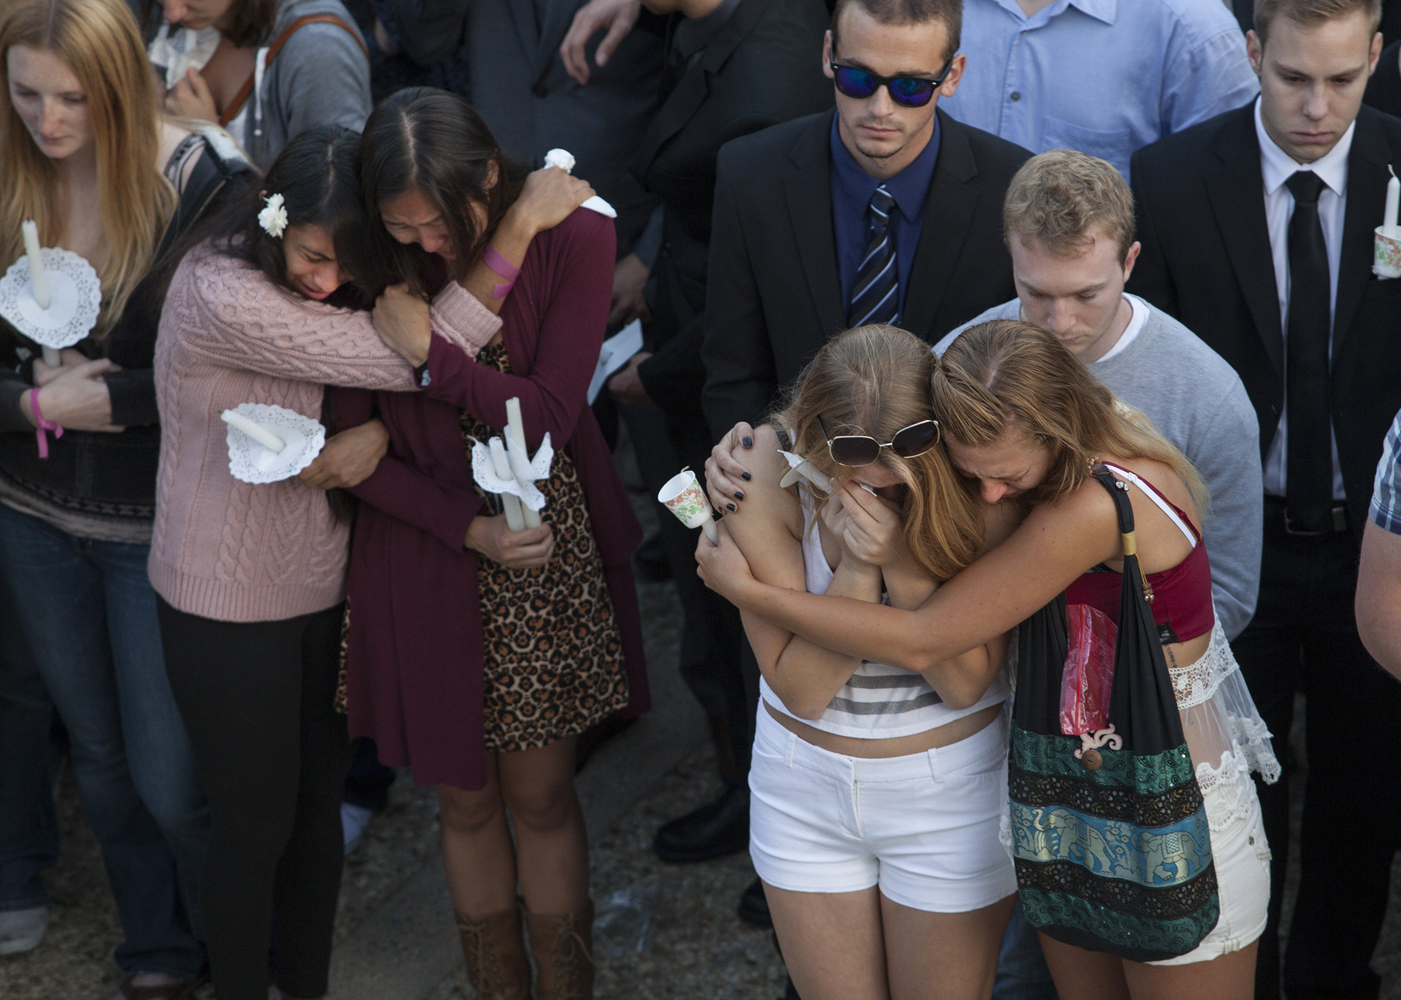 May 24, 2014. Mourners comfort each other during a vigil at the University of California Santa Barbara, where a gunman killed six and injured 13, in Isla Vista, Calif.